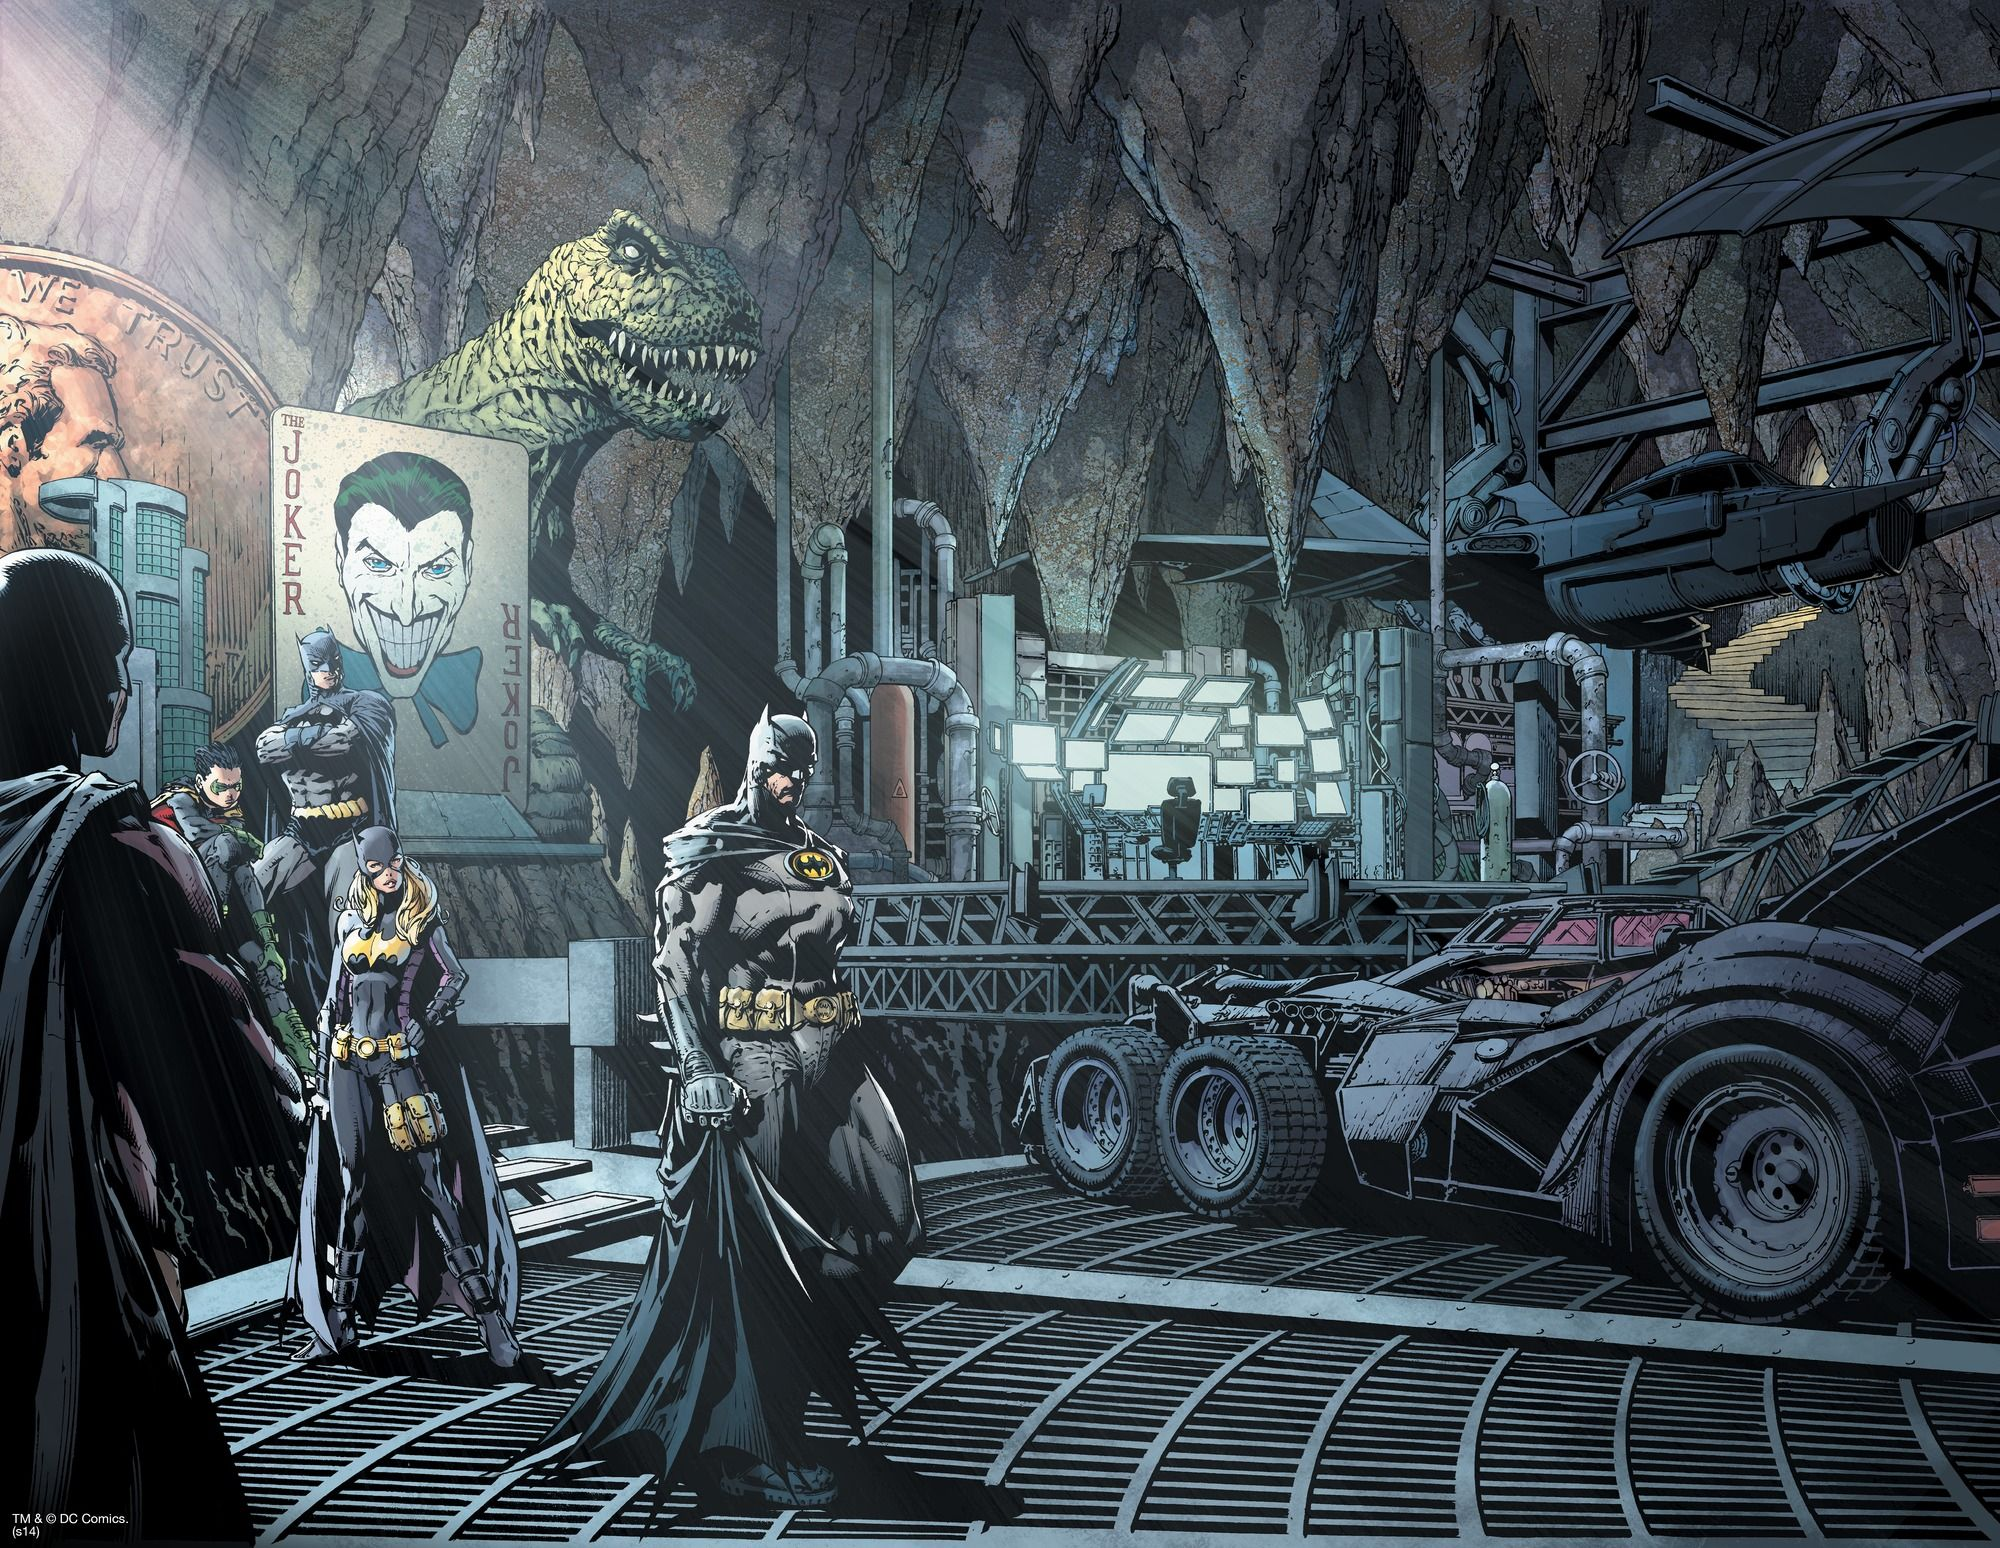 The Batcave wall mural